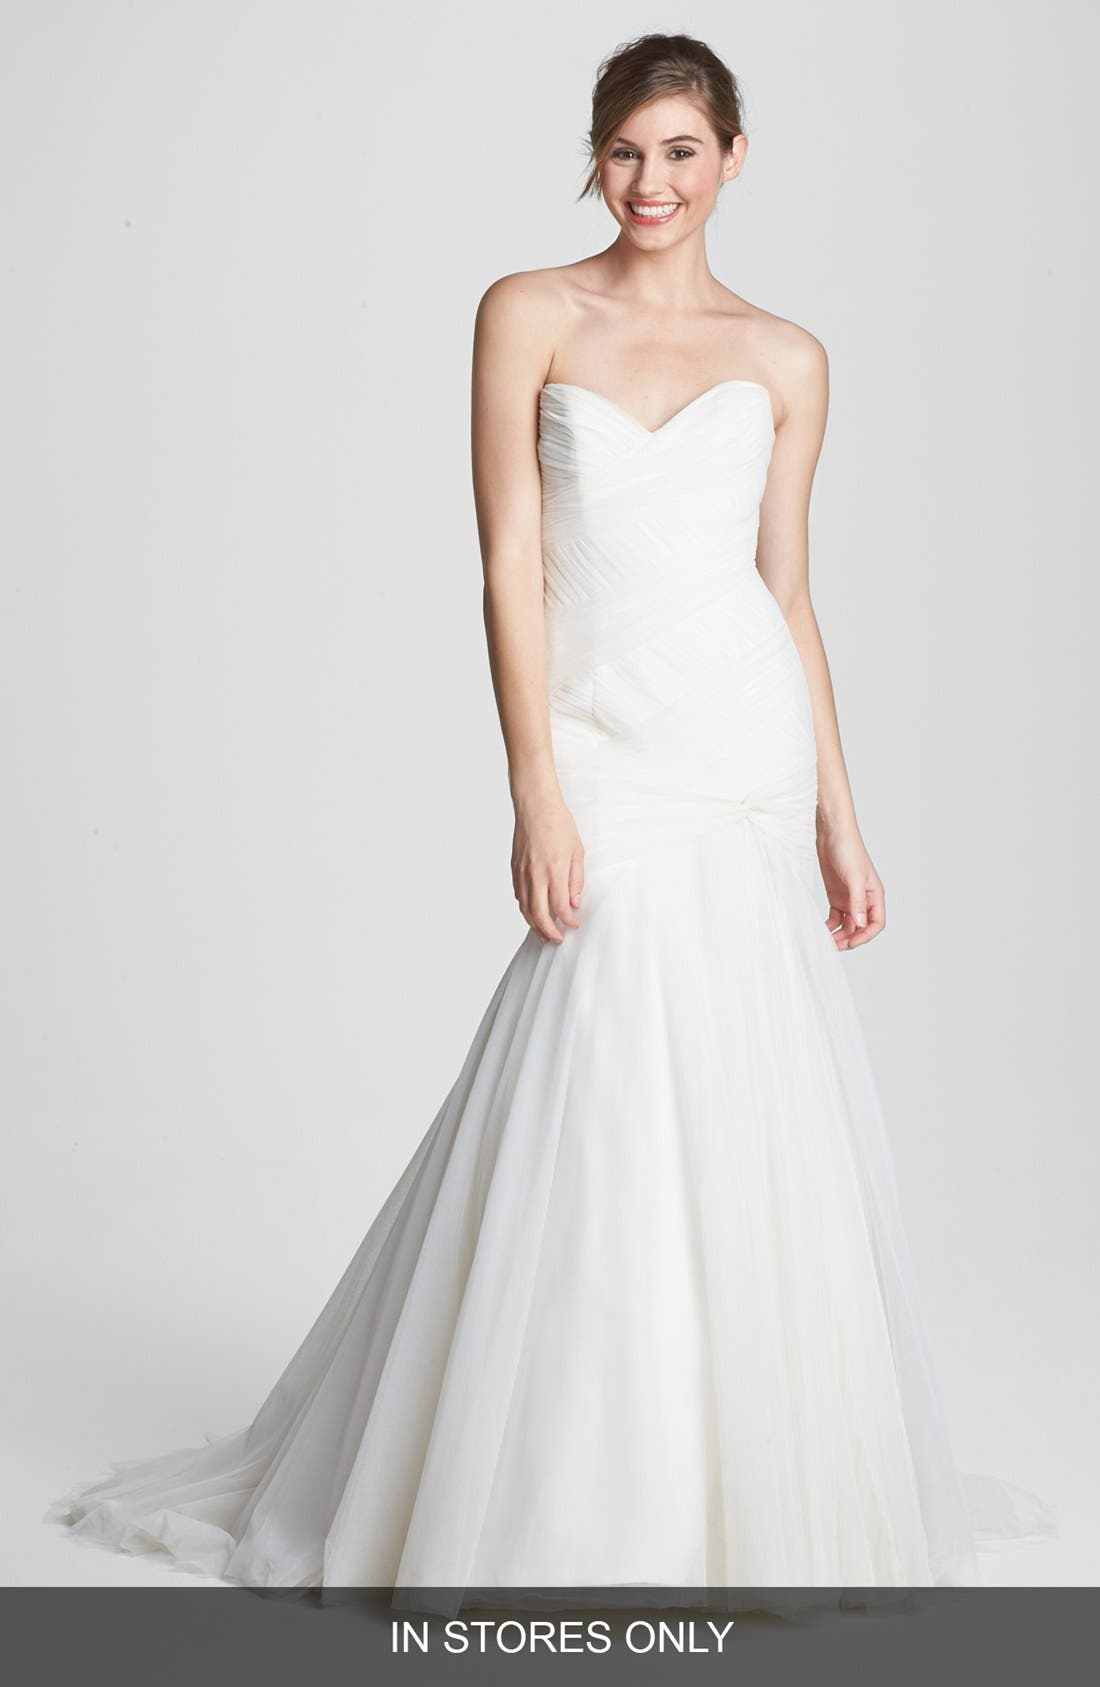 Alternate Image 1 Selected - Anne Barge 'Aimee' Ruched Mesh Mermaid Dress (In Stores Only)